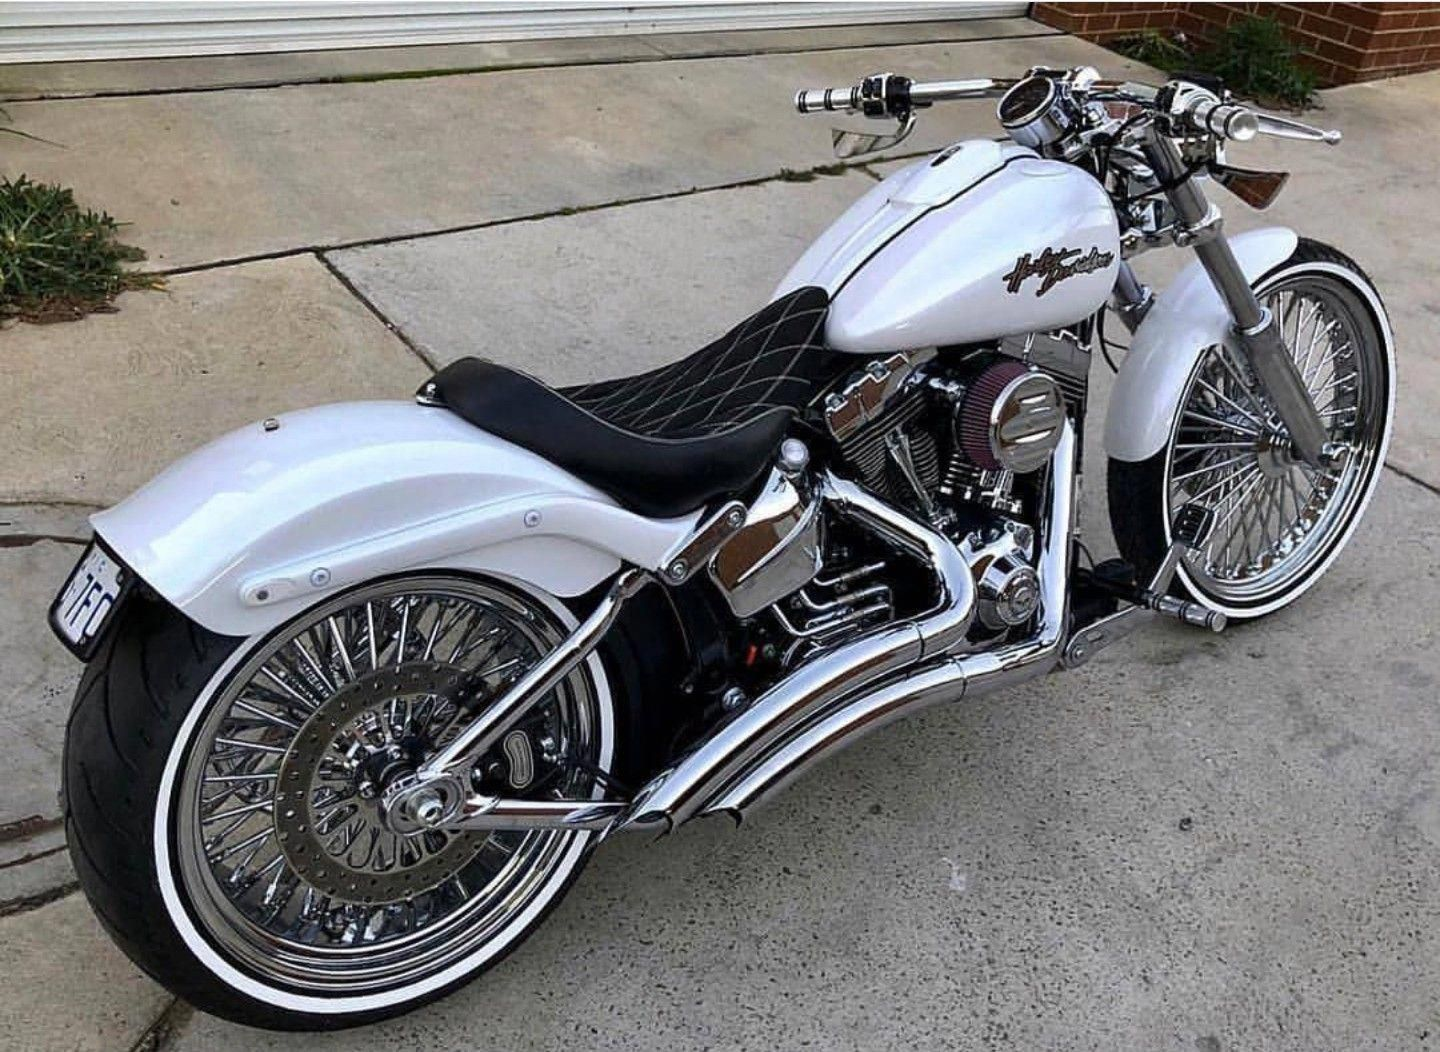 Harley Breakout For Sale >> Harley Davidson Softail Breakout For Sale